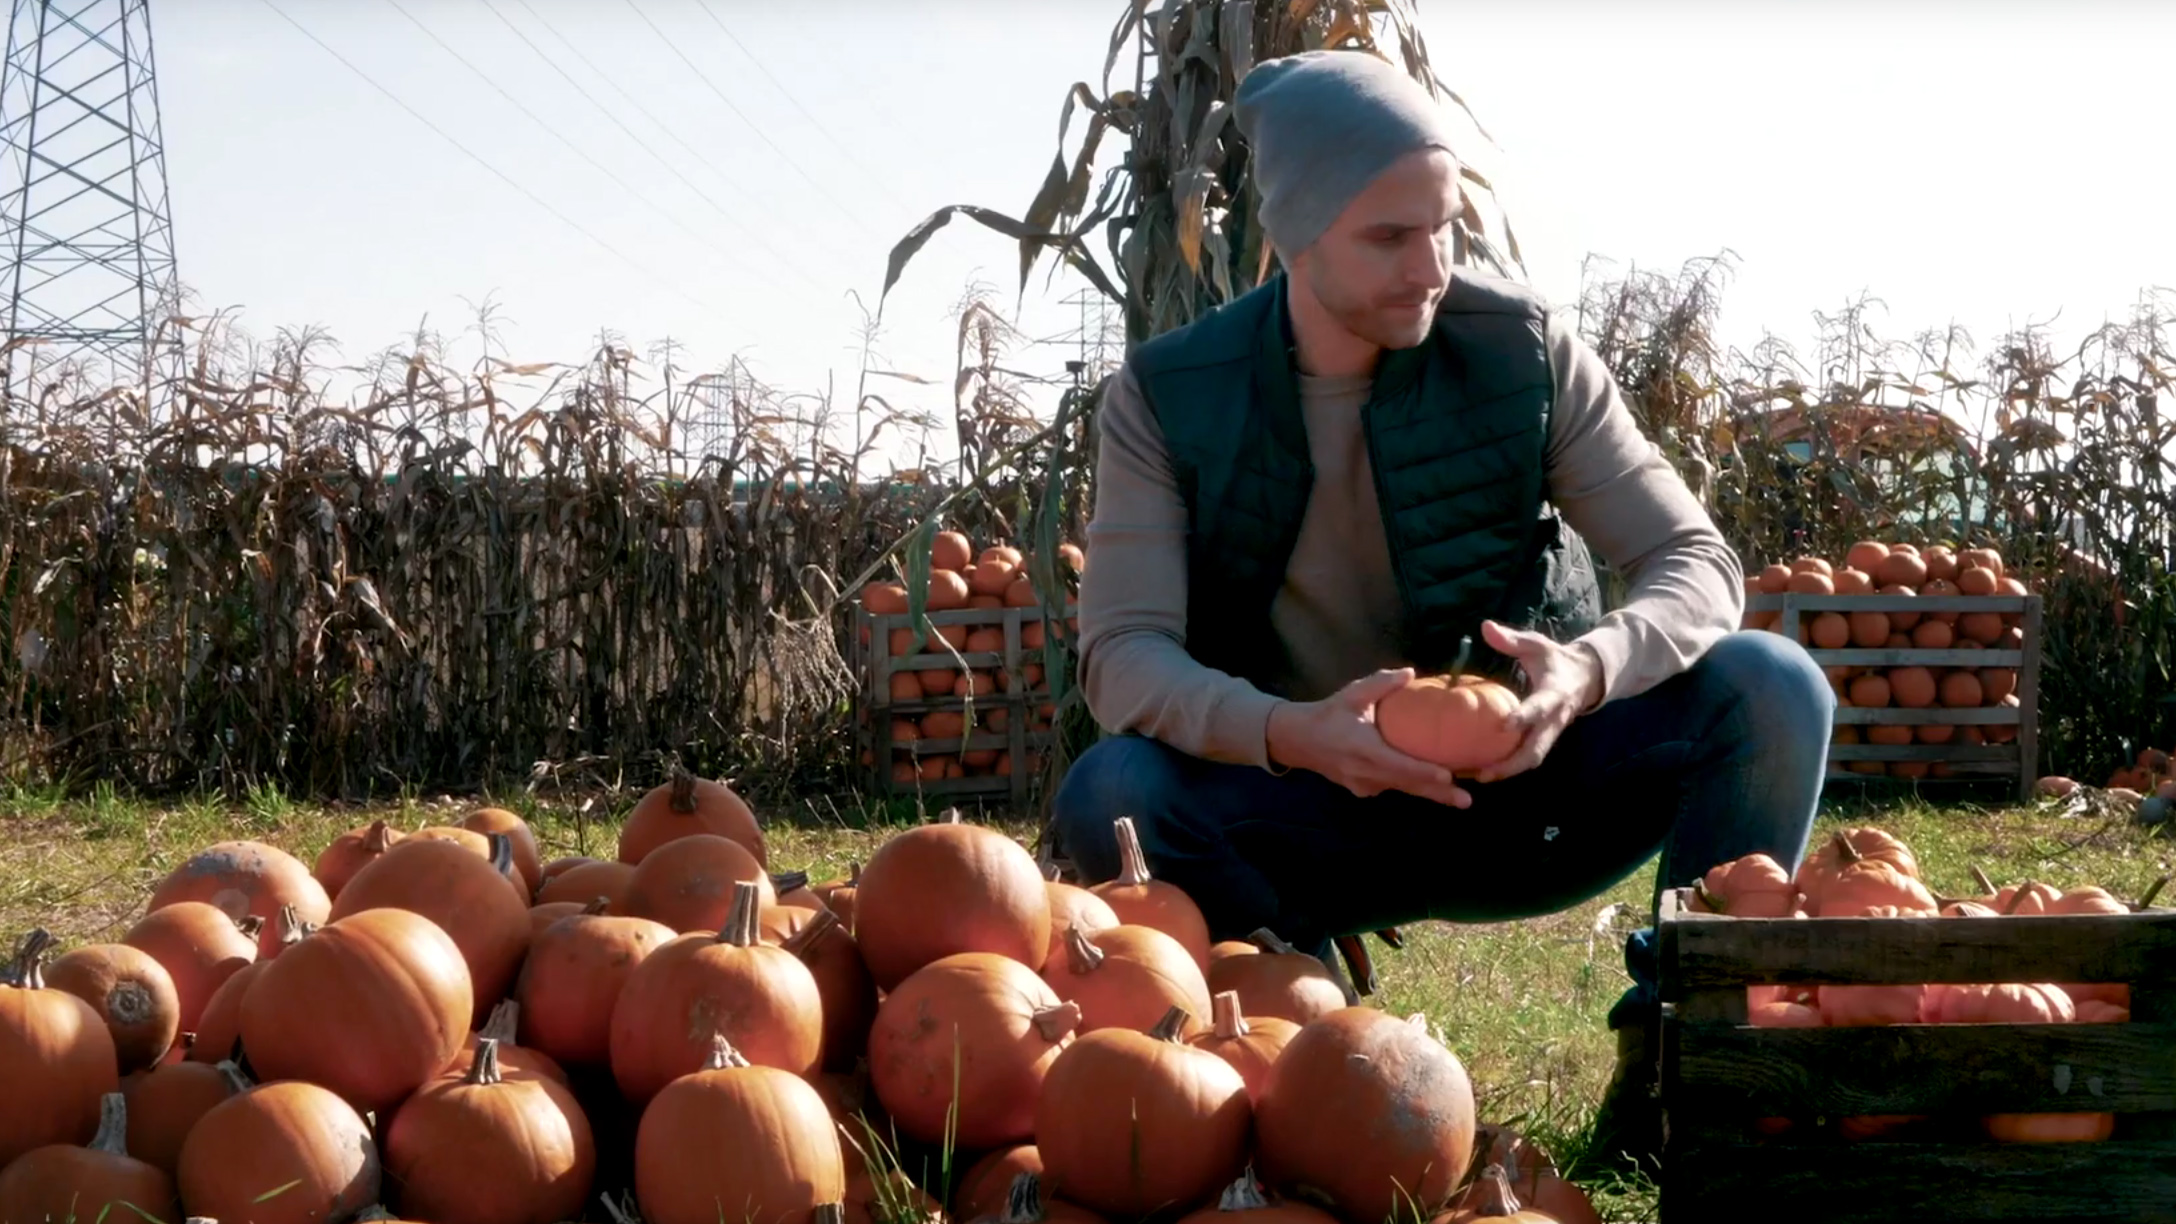 A man placing small pumpkins into a wooden crate while in a field.